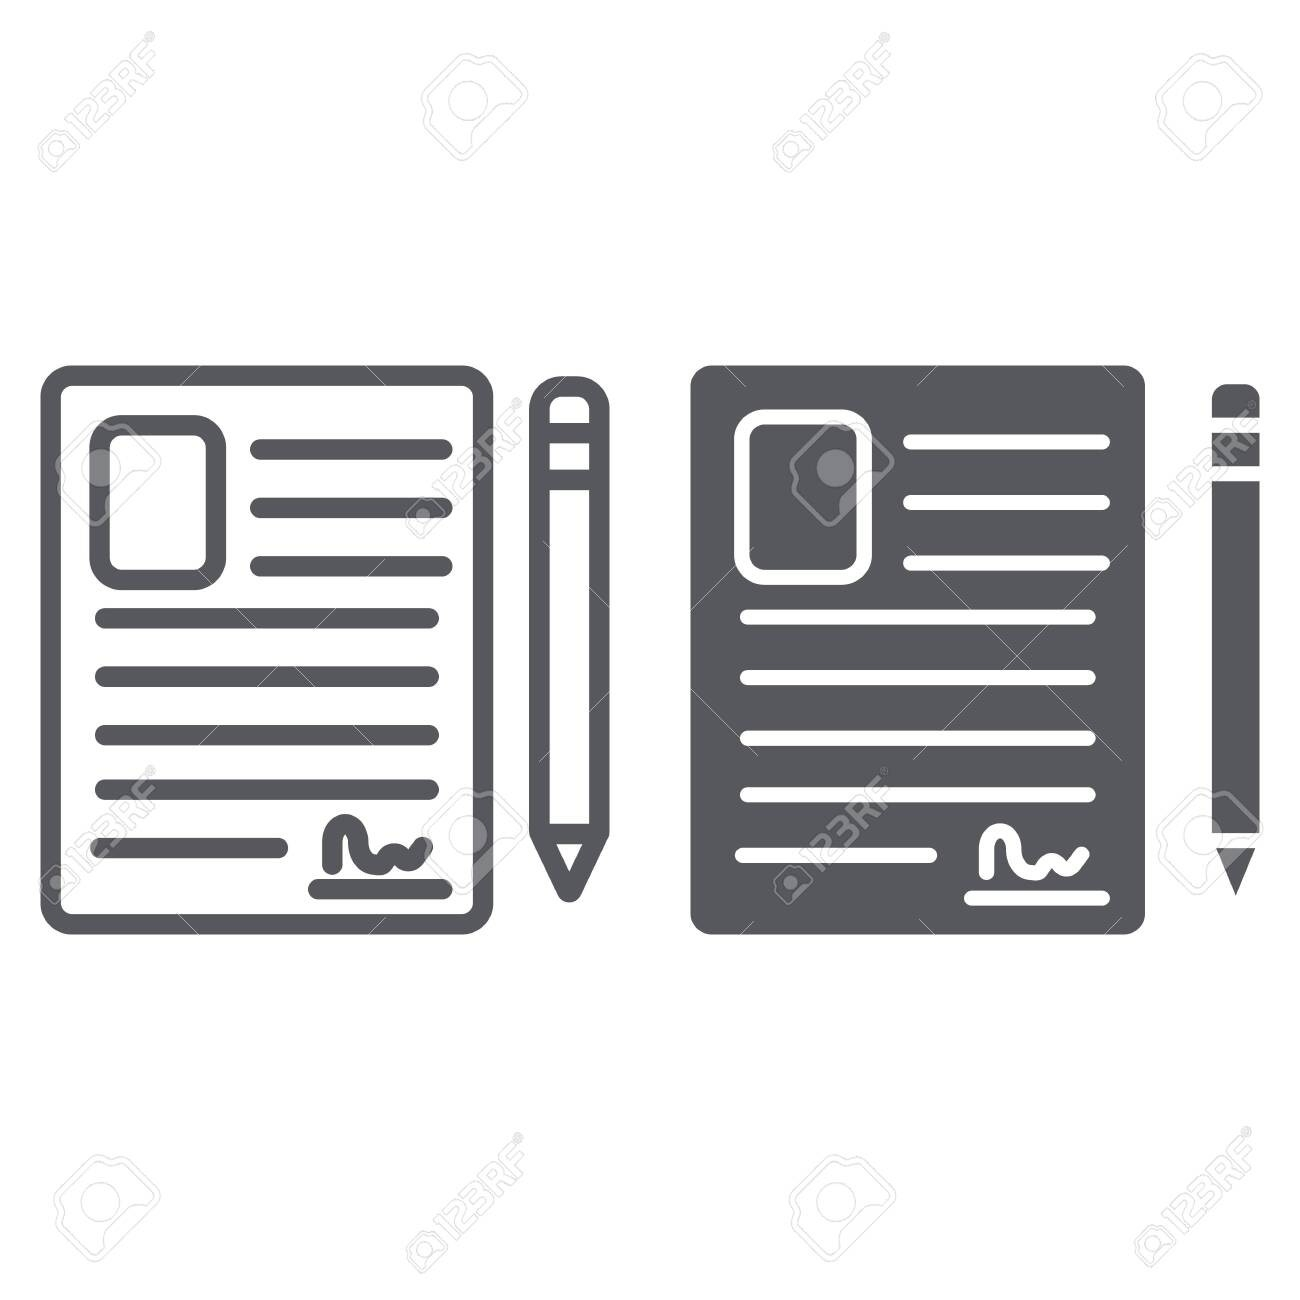 Contact Form Line And Glyph Icon, Blank And Register, Document..-Glyphicon Icon Is Blank